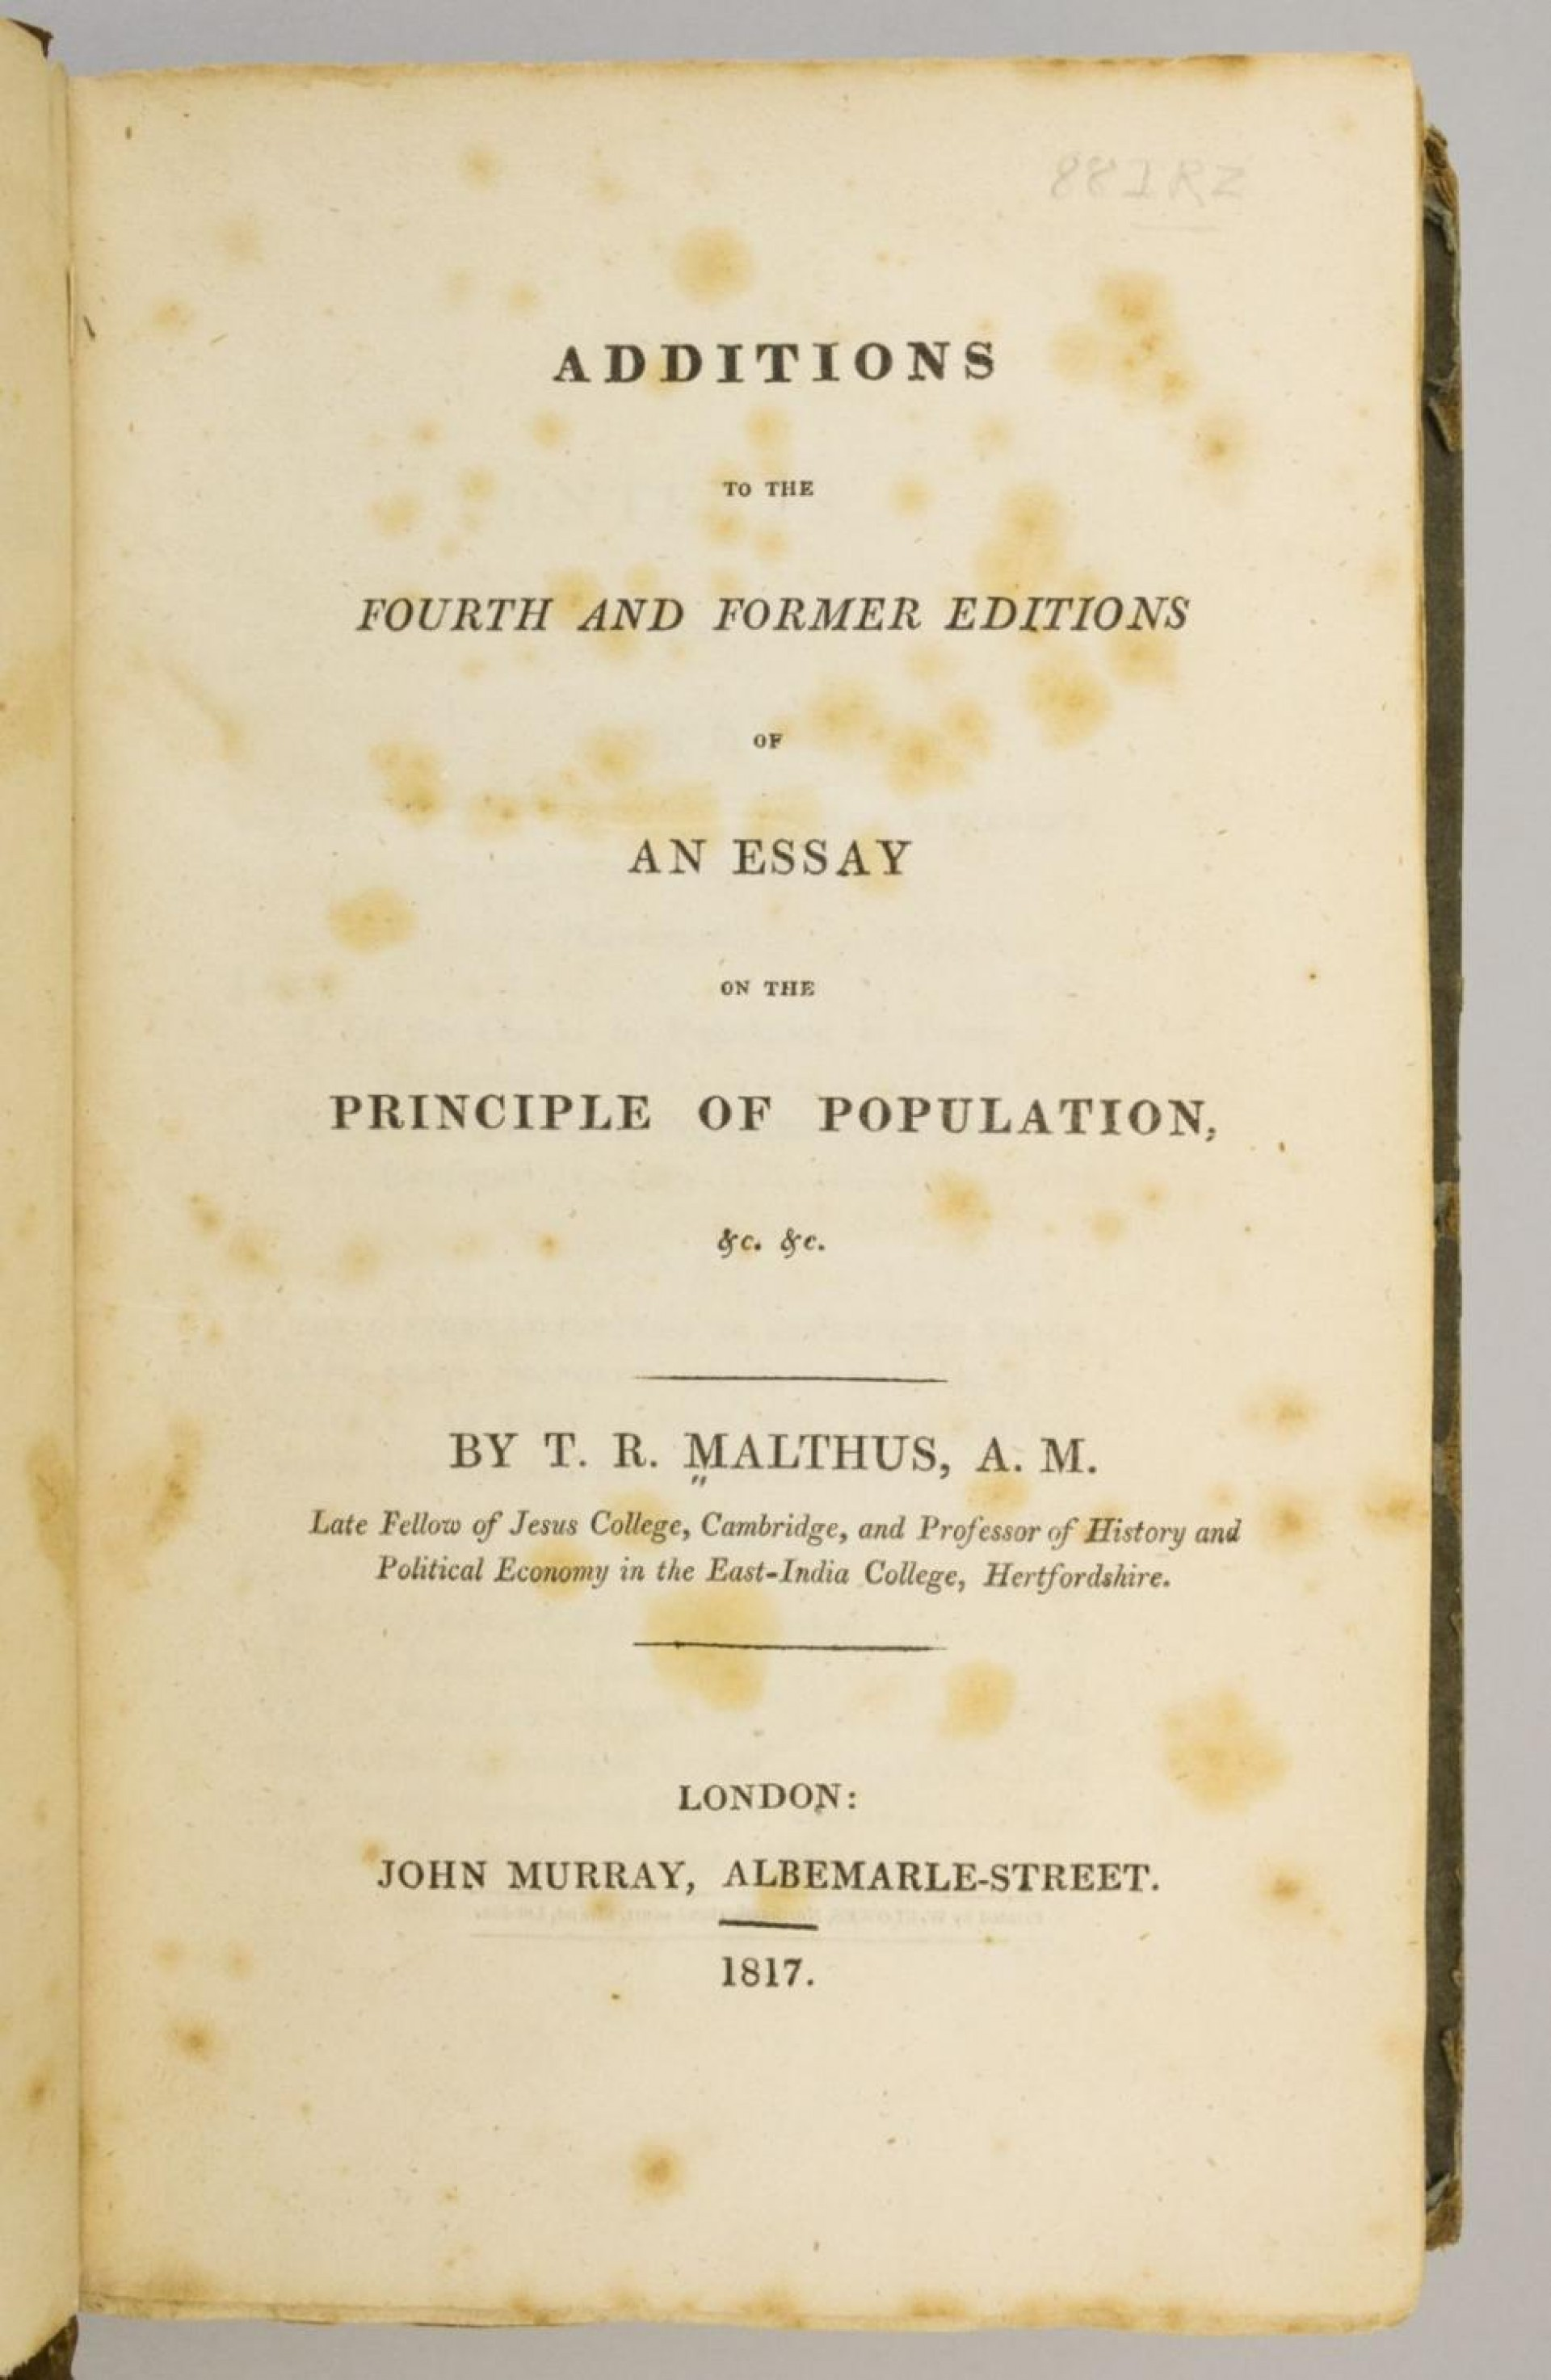 005 5337830061 2 Thomas Malthus An Essay On The Principle Of Population Marvelous Summary Analysis Argued In His (1798) That 1920